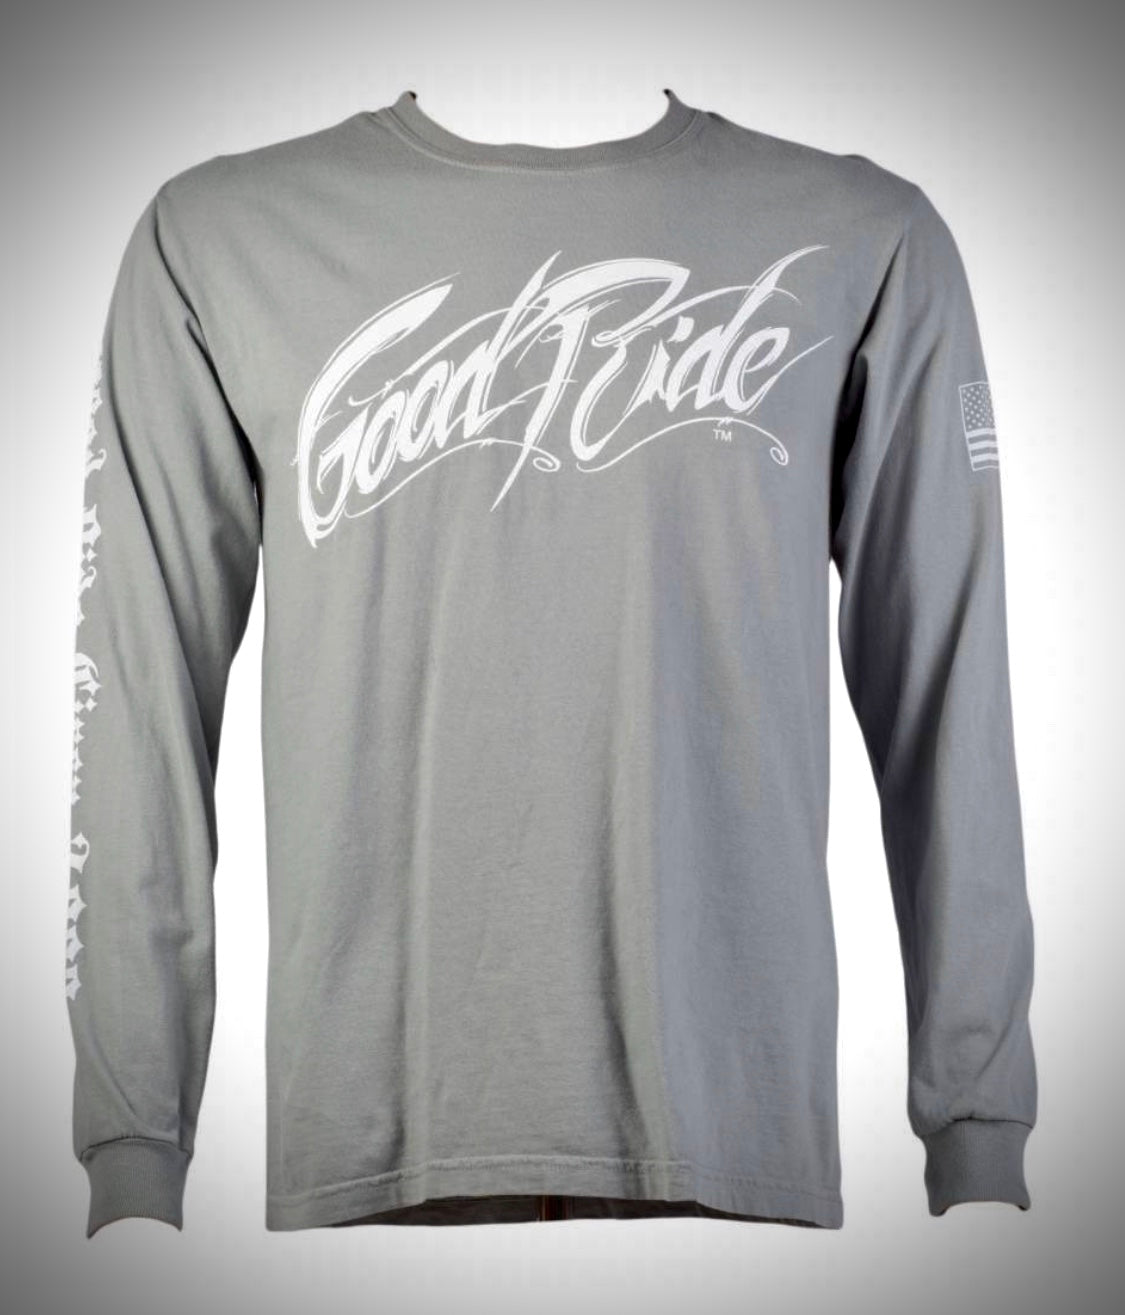 Men's/Women's Gray Long Sleeve Tee Shirt w/ White GR